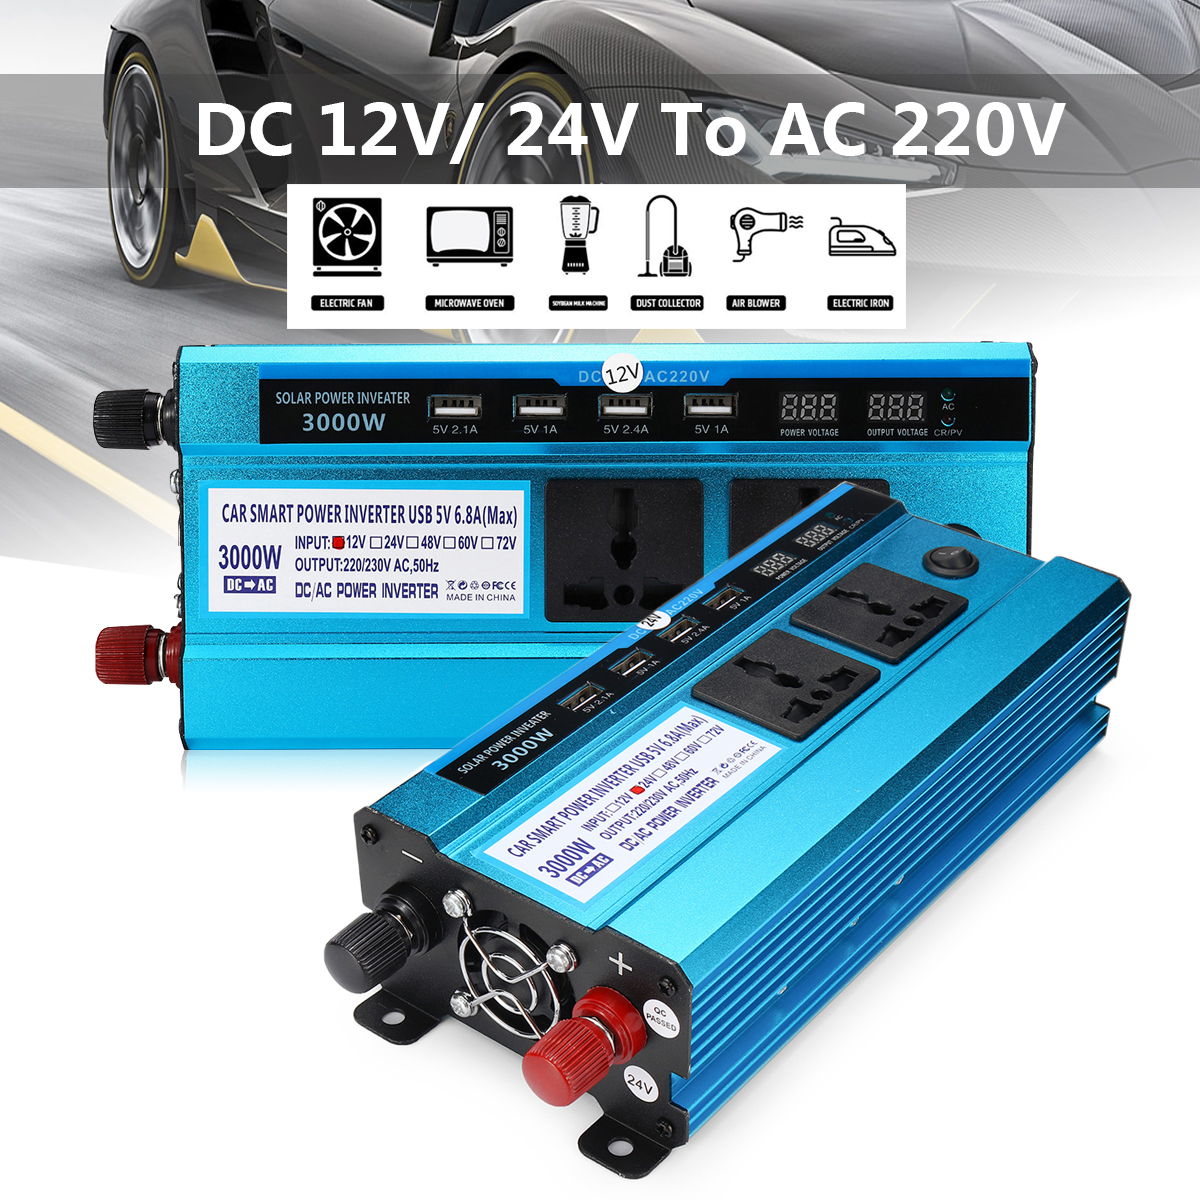 3000W Car LED Solar Power Inverter DC 12/ 24V to AC 220V Sine Wave USB Converter Digital Display Built-in Cooling Fan Light